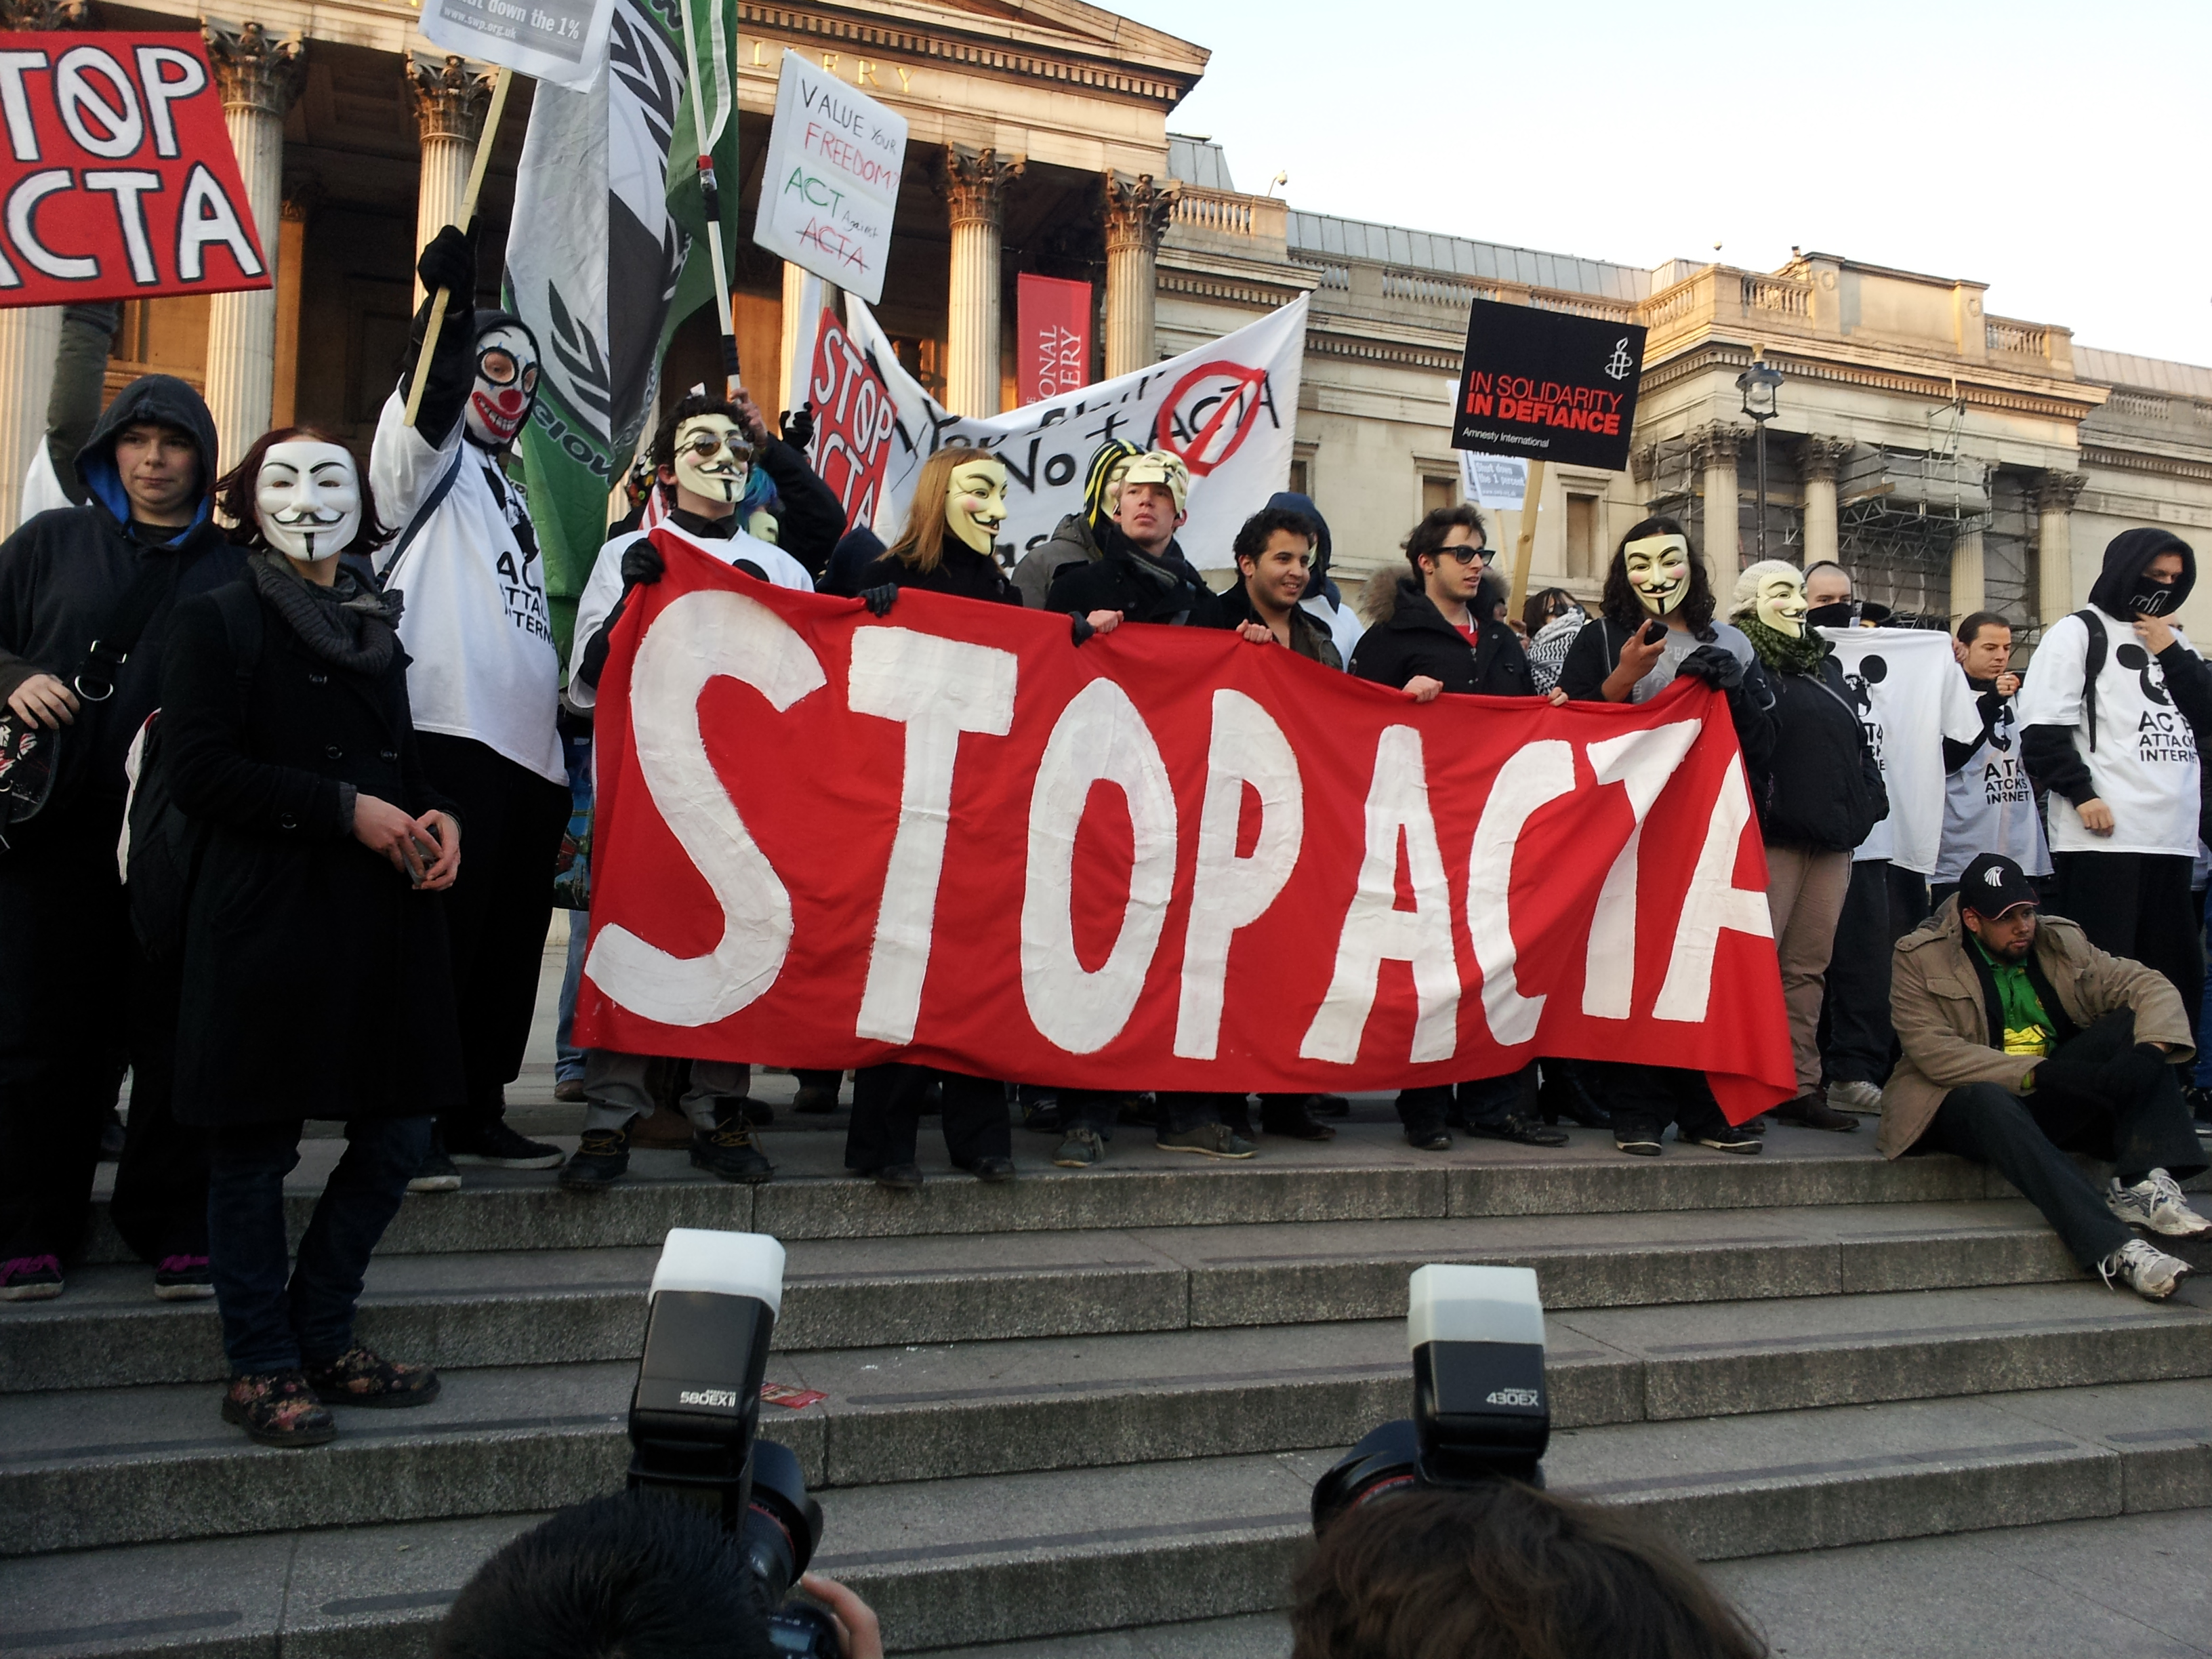 File:Stop ACTA Anonymous 2011 protest.jpg - Wikimedia Commons